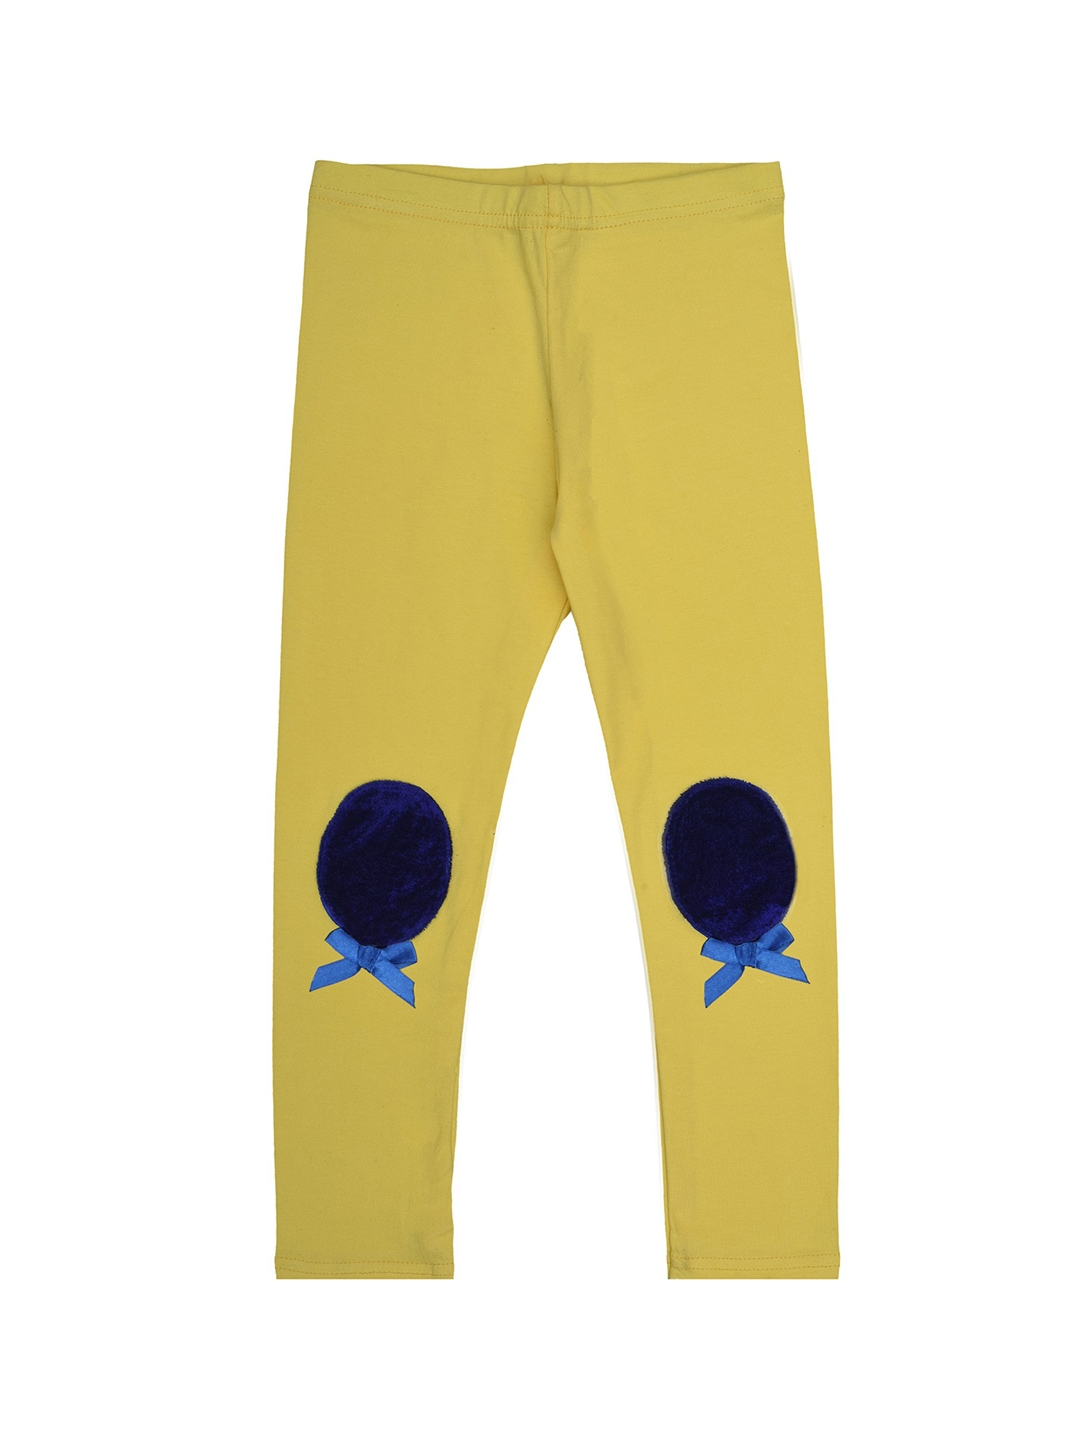 Dchica Girls Yellow Solid Ankle Length Legging